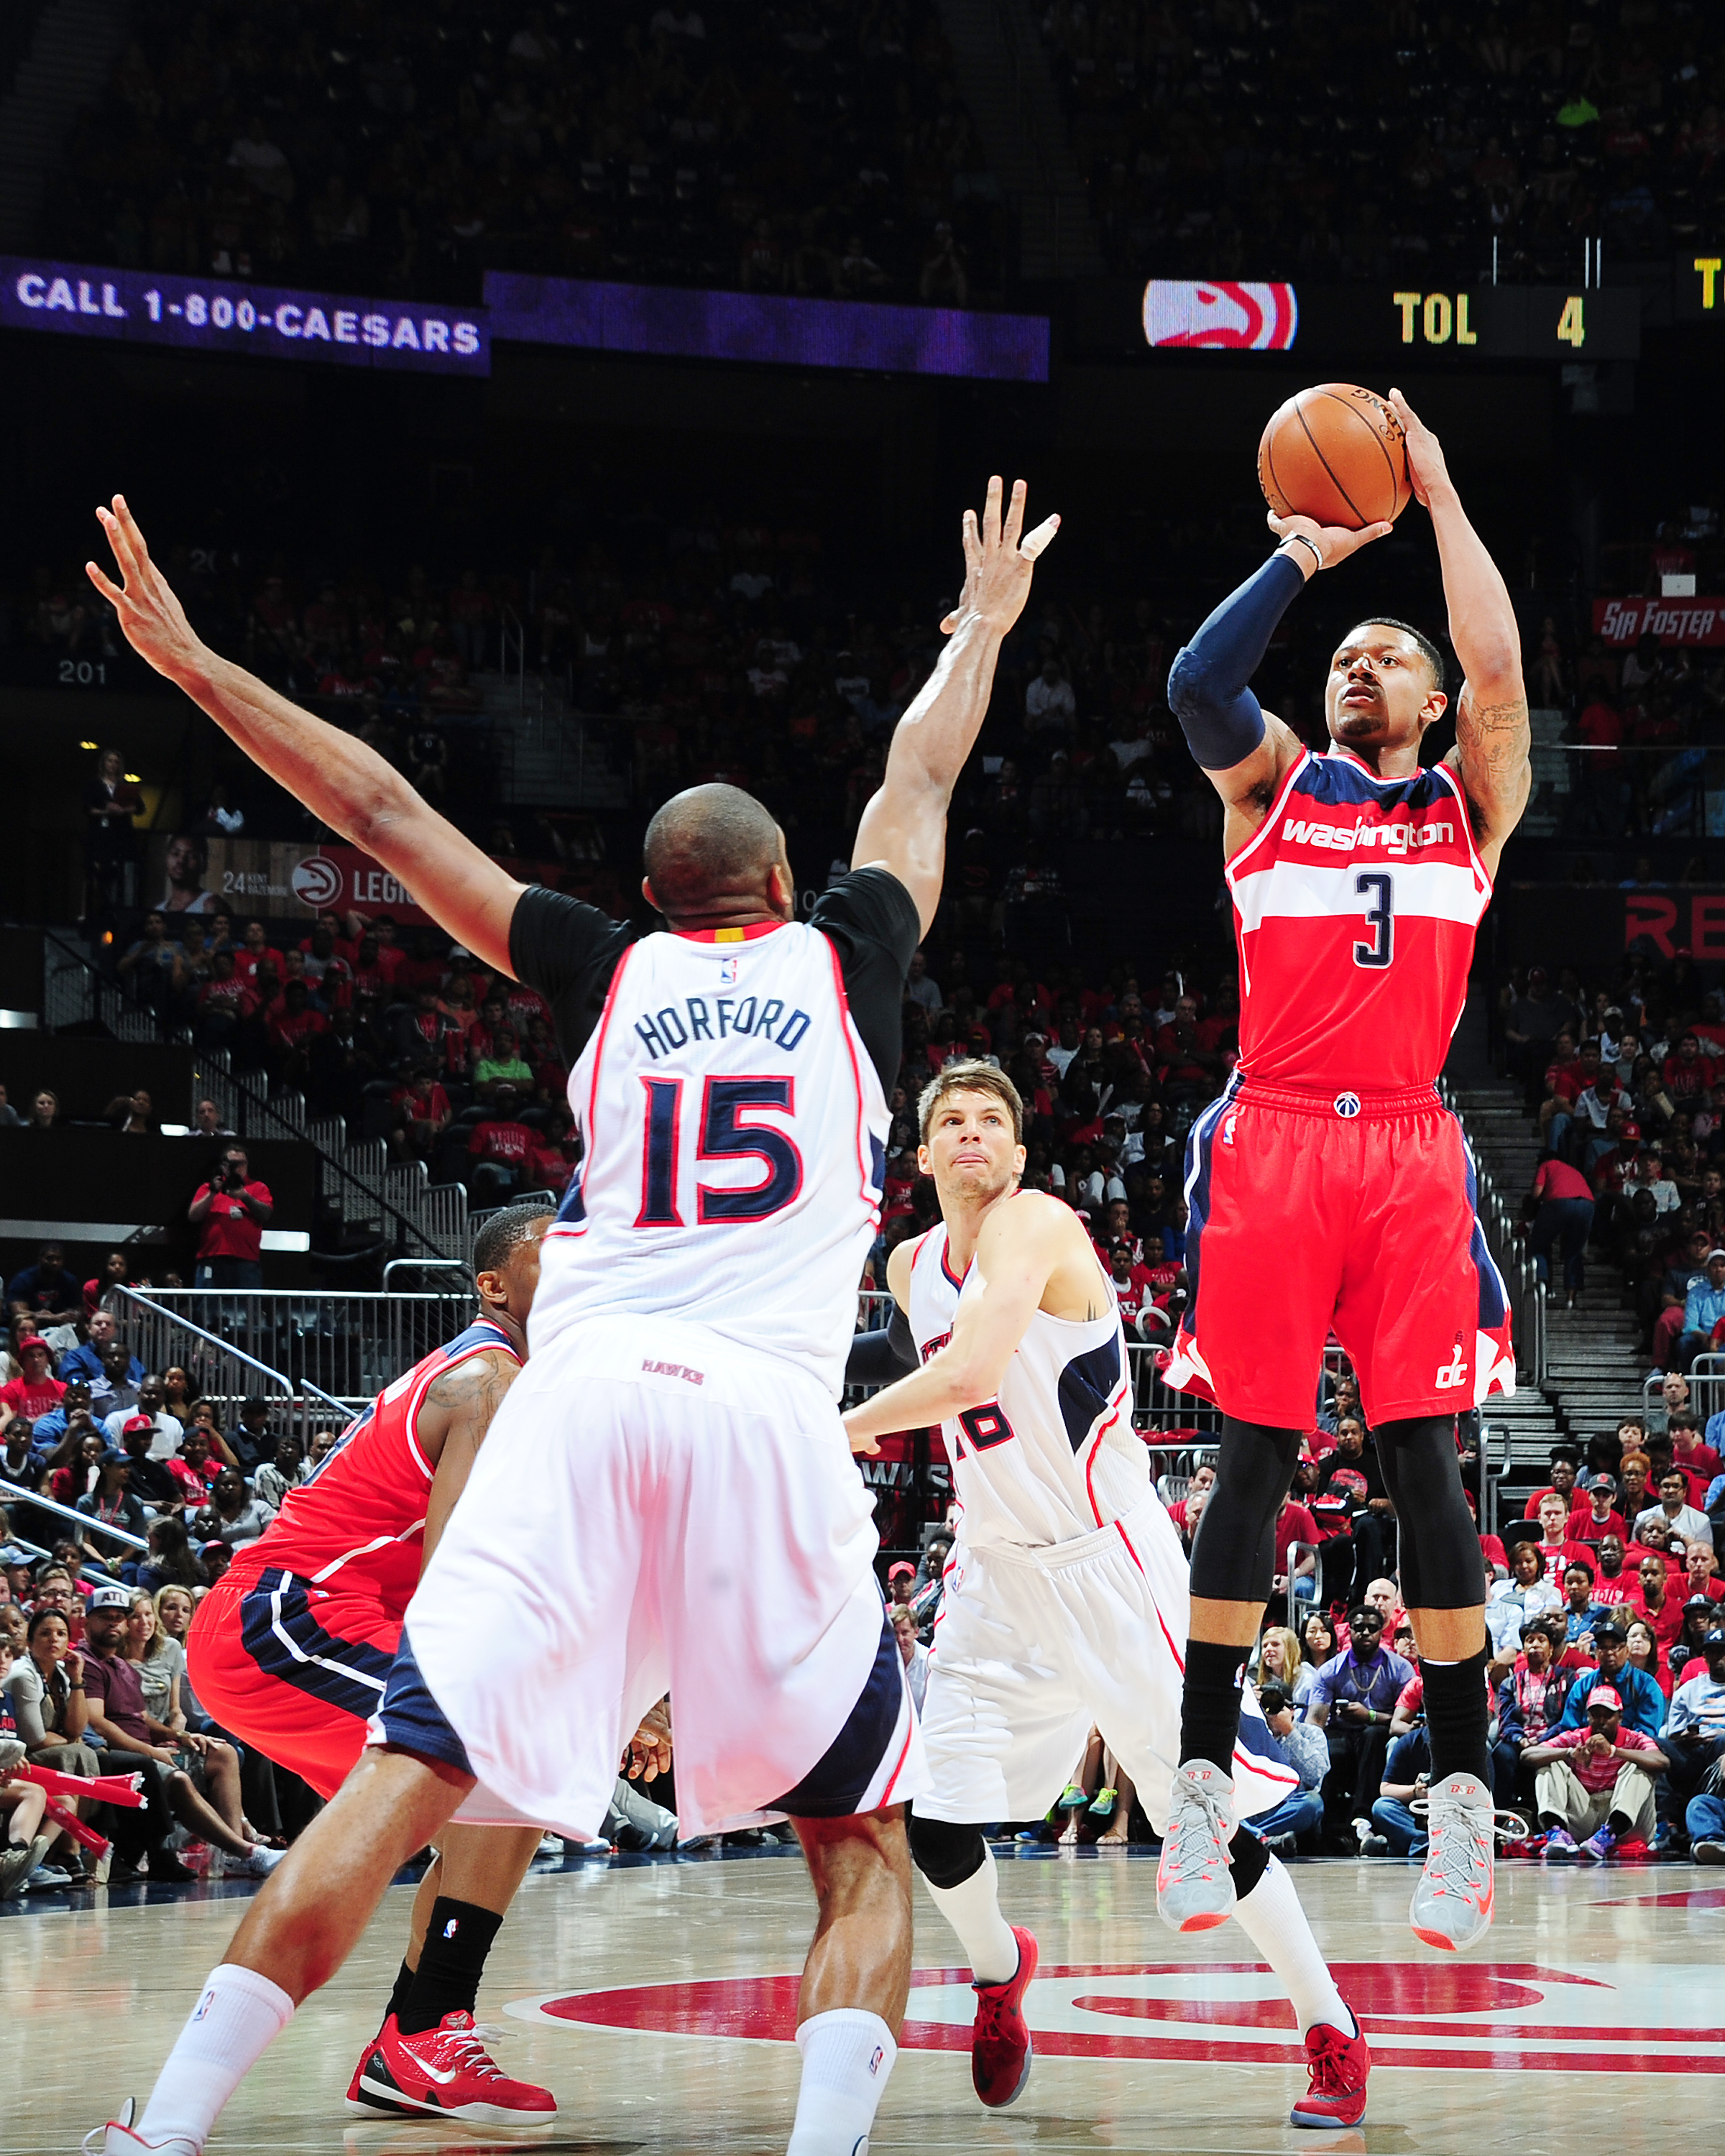 ATLANTA, GEORGIA - MAY 3: Bradley Beal #3 of the Washington Wizards shoots against the Atlanta Hawks during Game One of the Eastern Conference Semifinals during the NBA Playoffs on May 3, 2015 at Philips Center in Atlanta, Georgia.  (Photo by Scott Cunnin